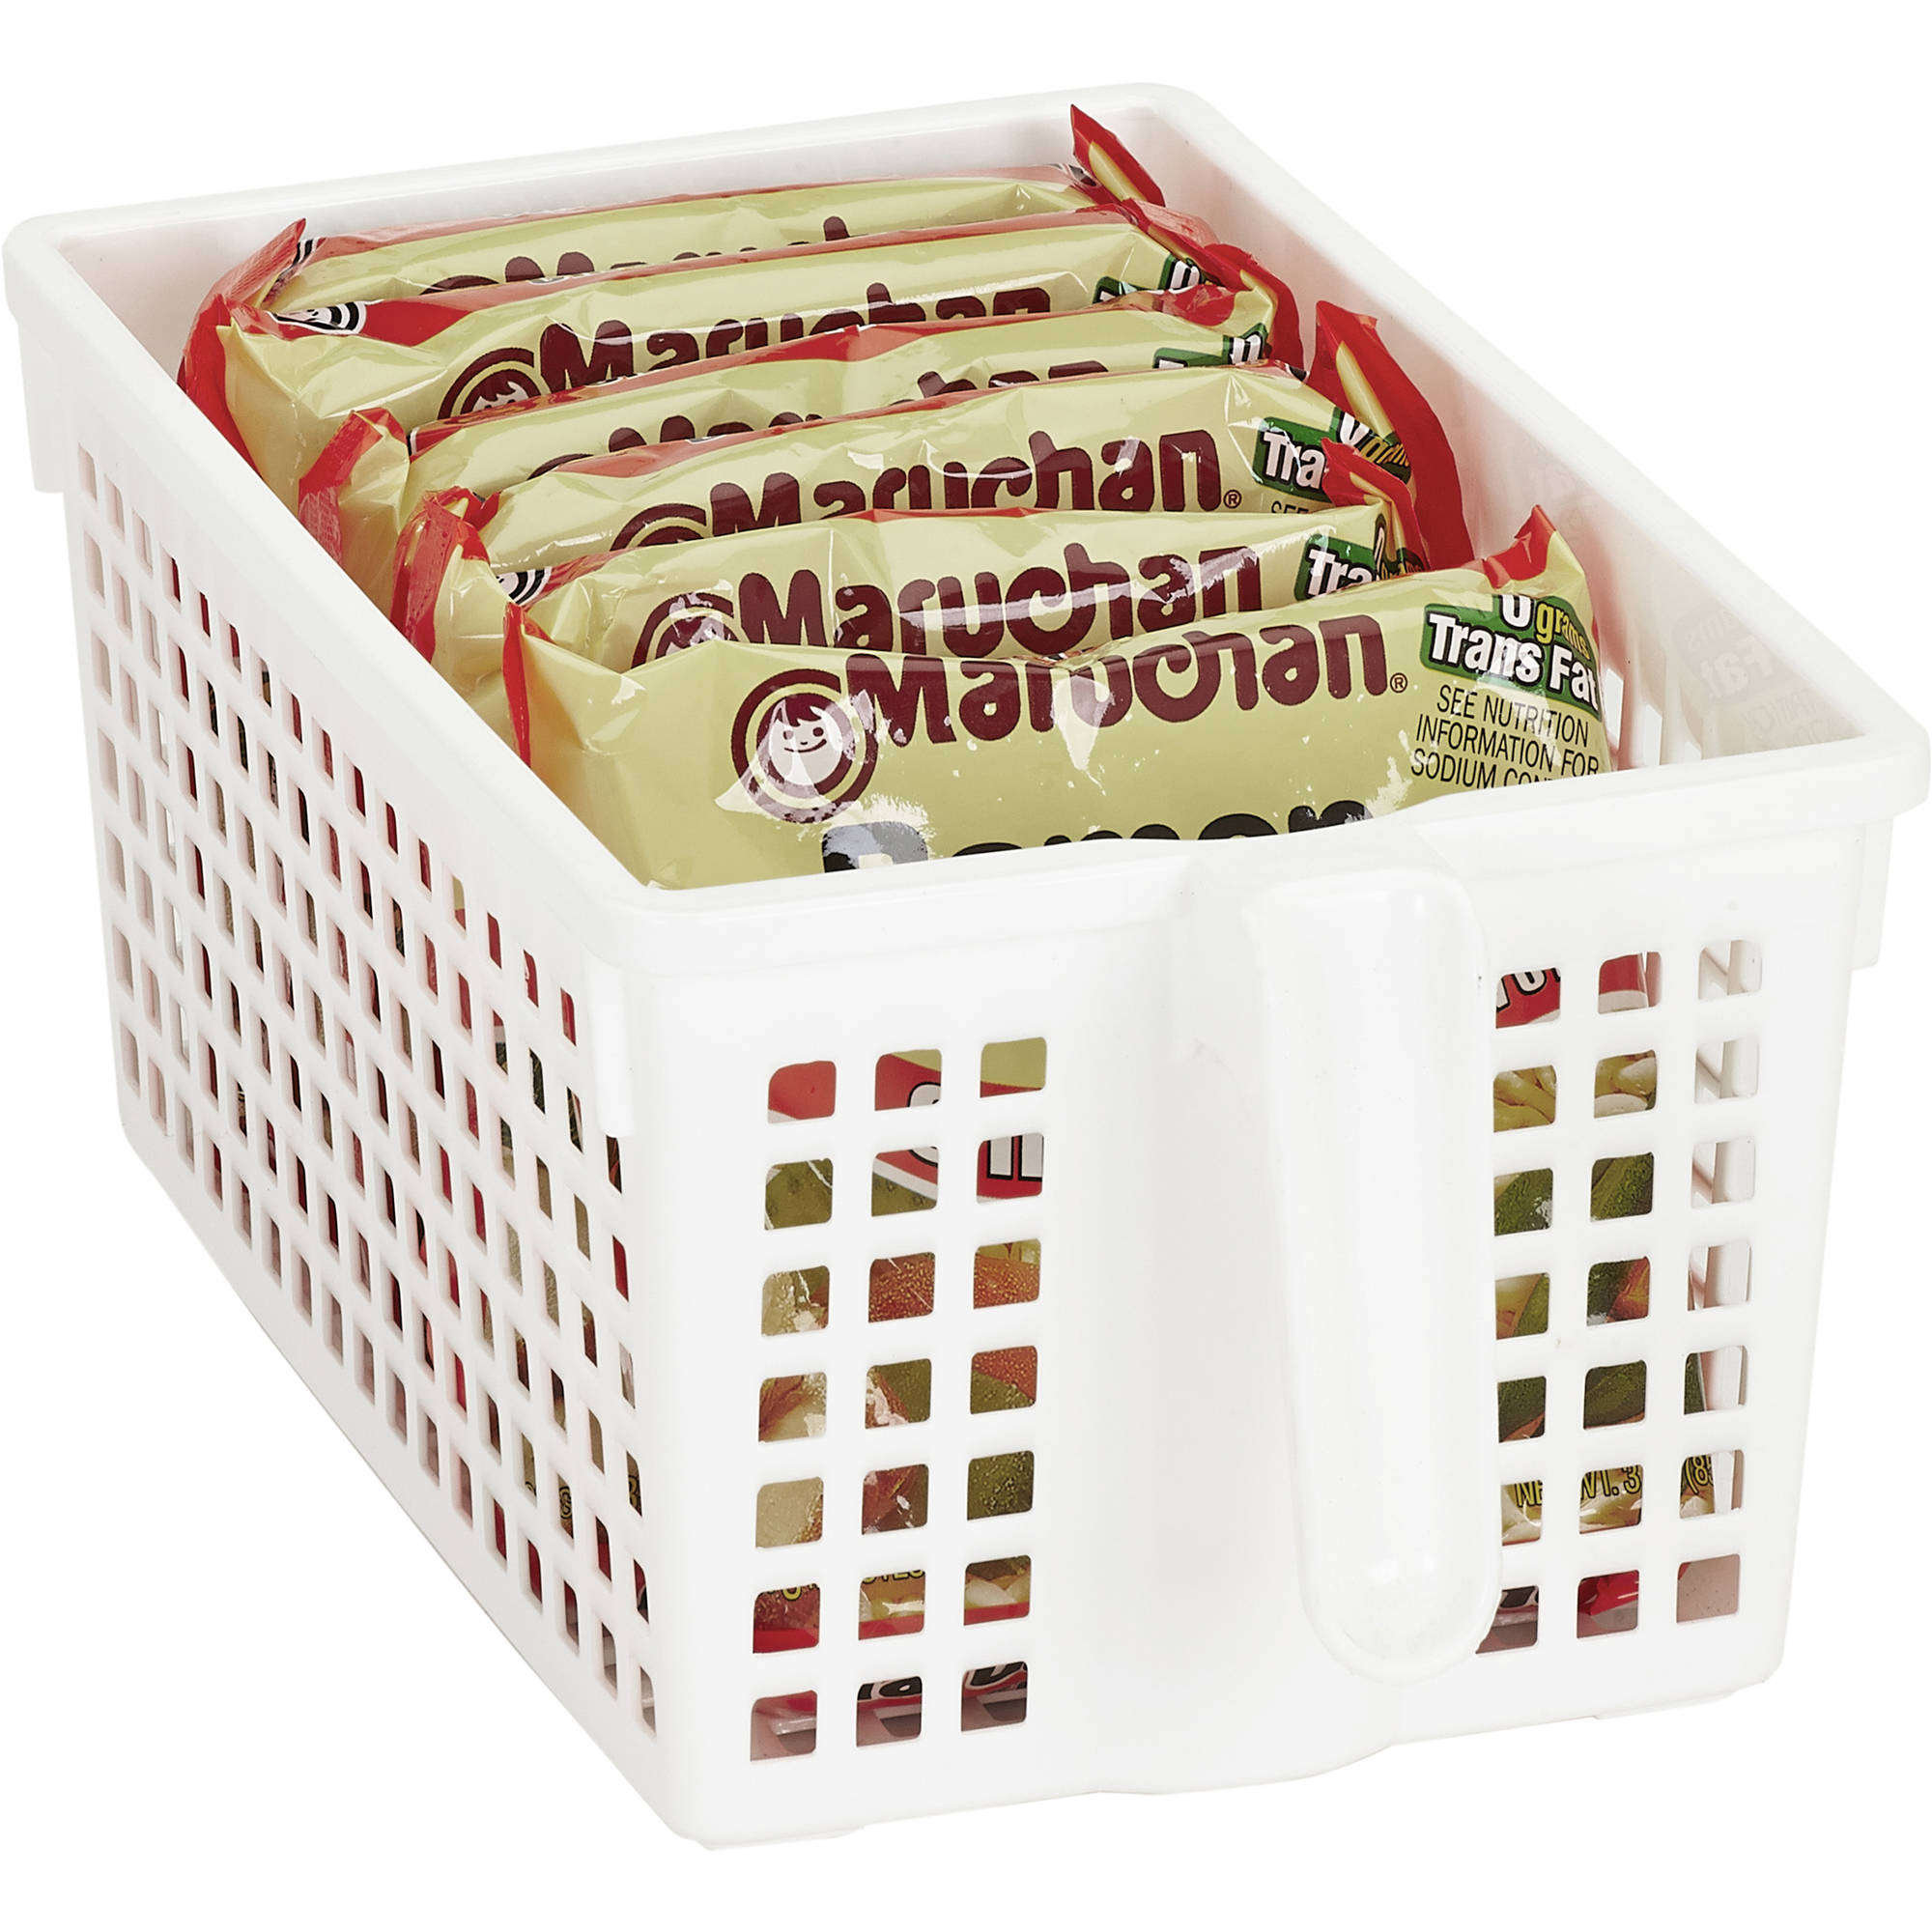 Kitchen Details Easy Pull Pantry Organizer Basket with Handle Grip, Small